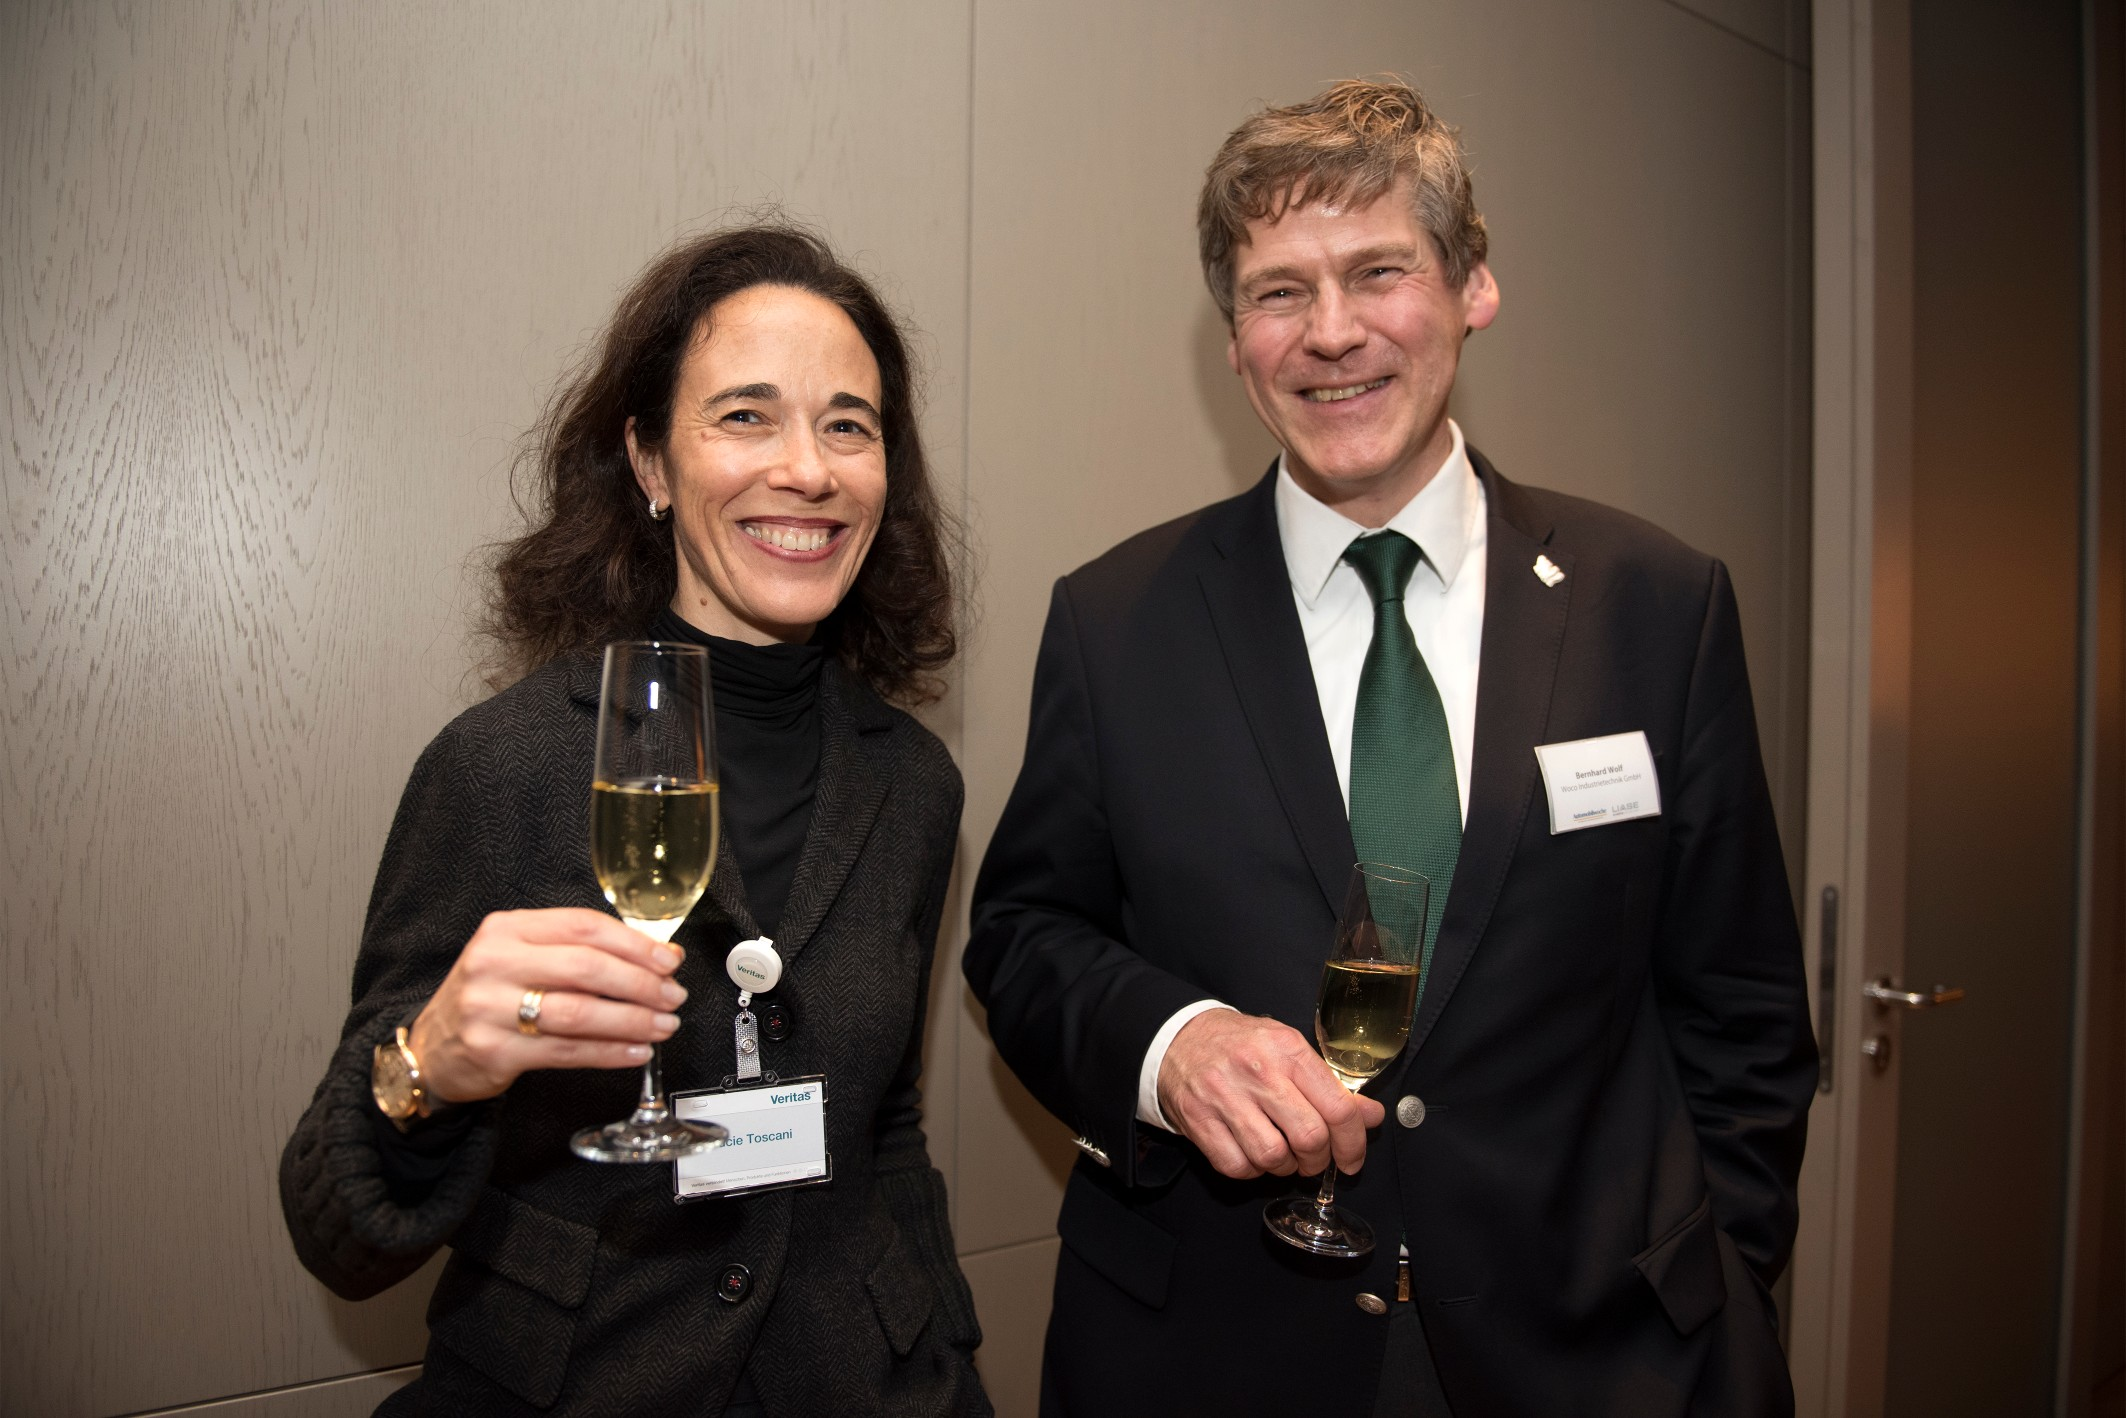 Lucie Toscani, CEO of Veritas, and Bernhard Wolf, Member of the Executive Board of WOCO Industrietechnik.